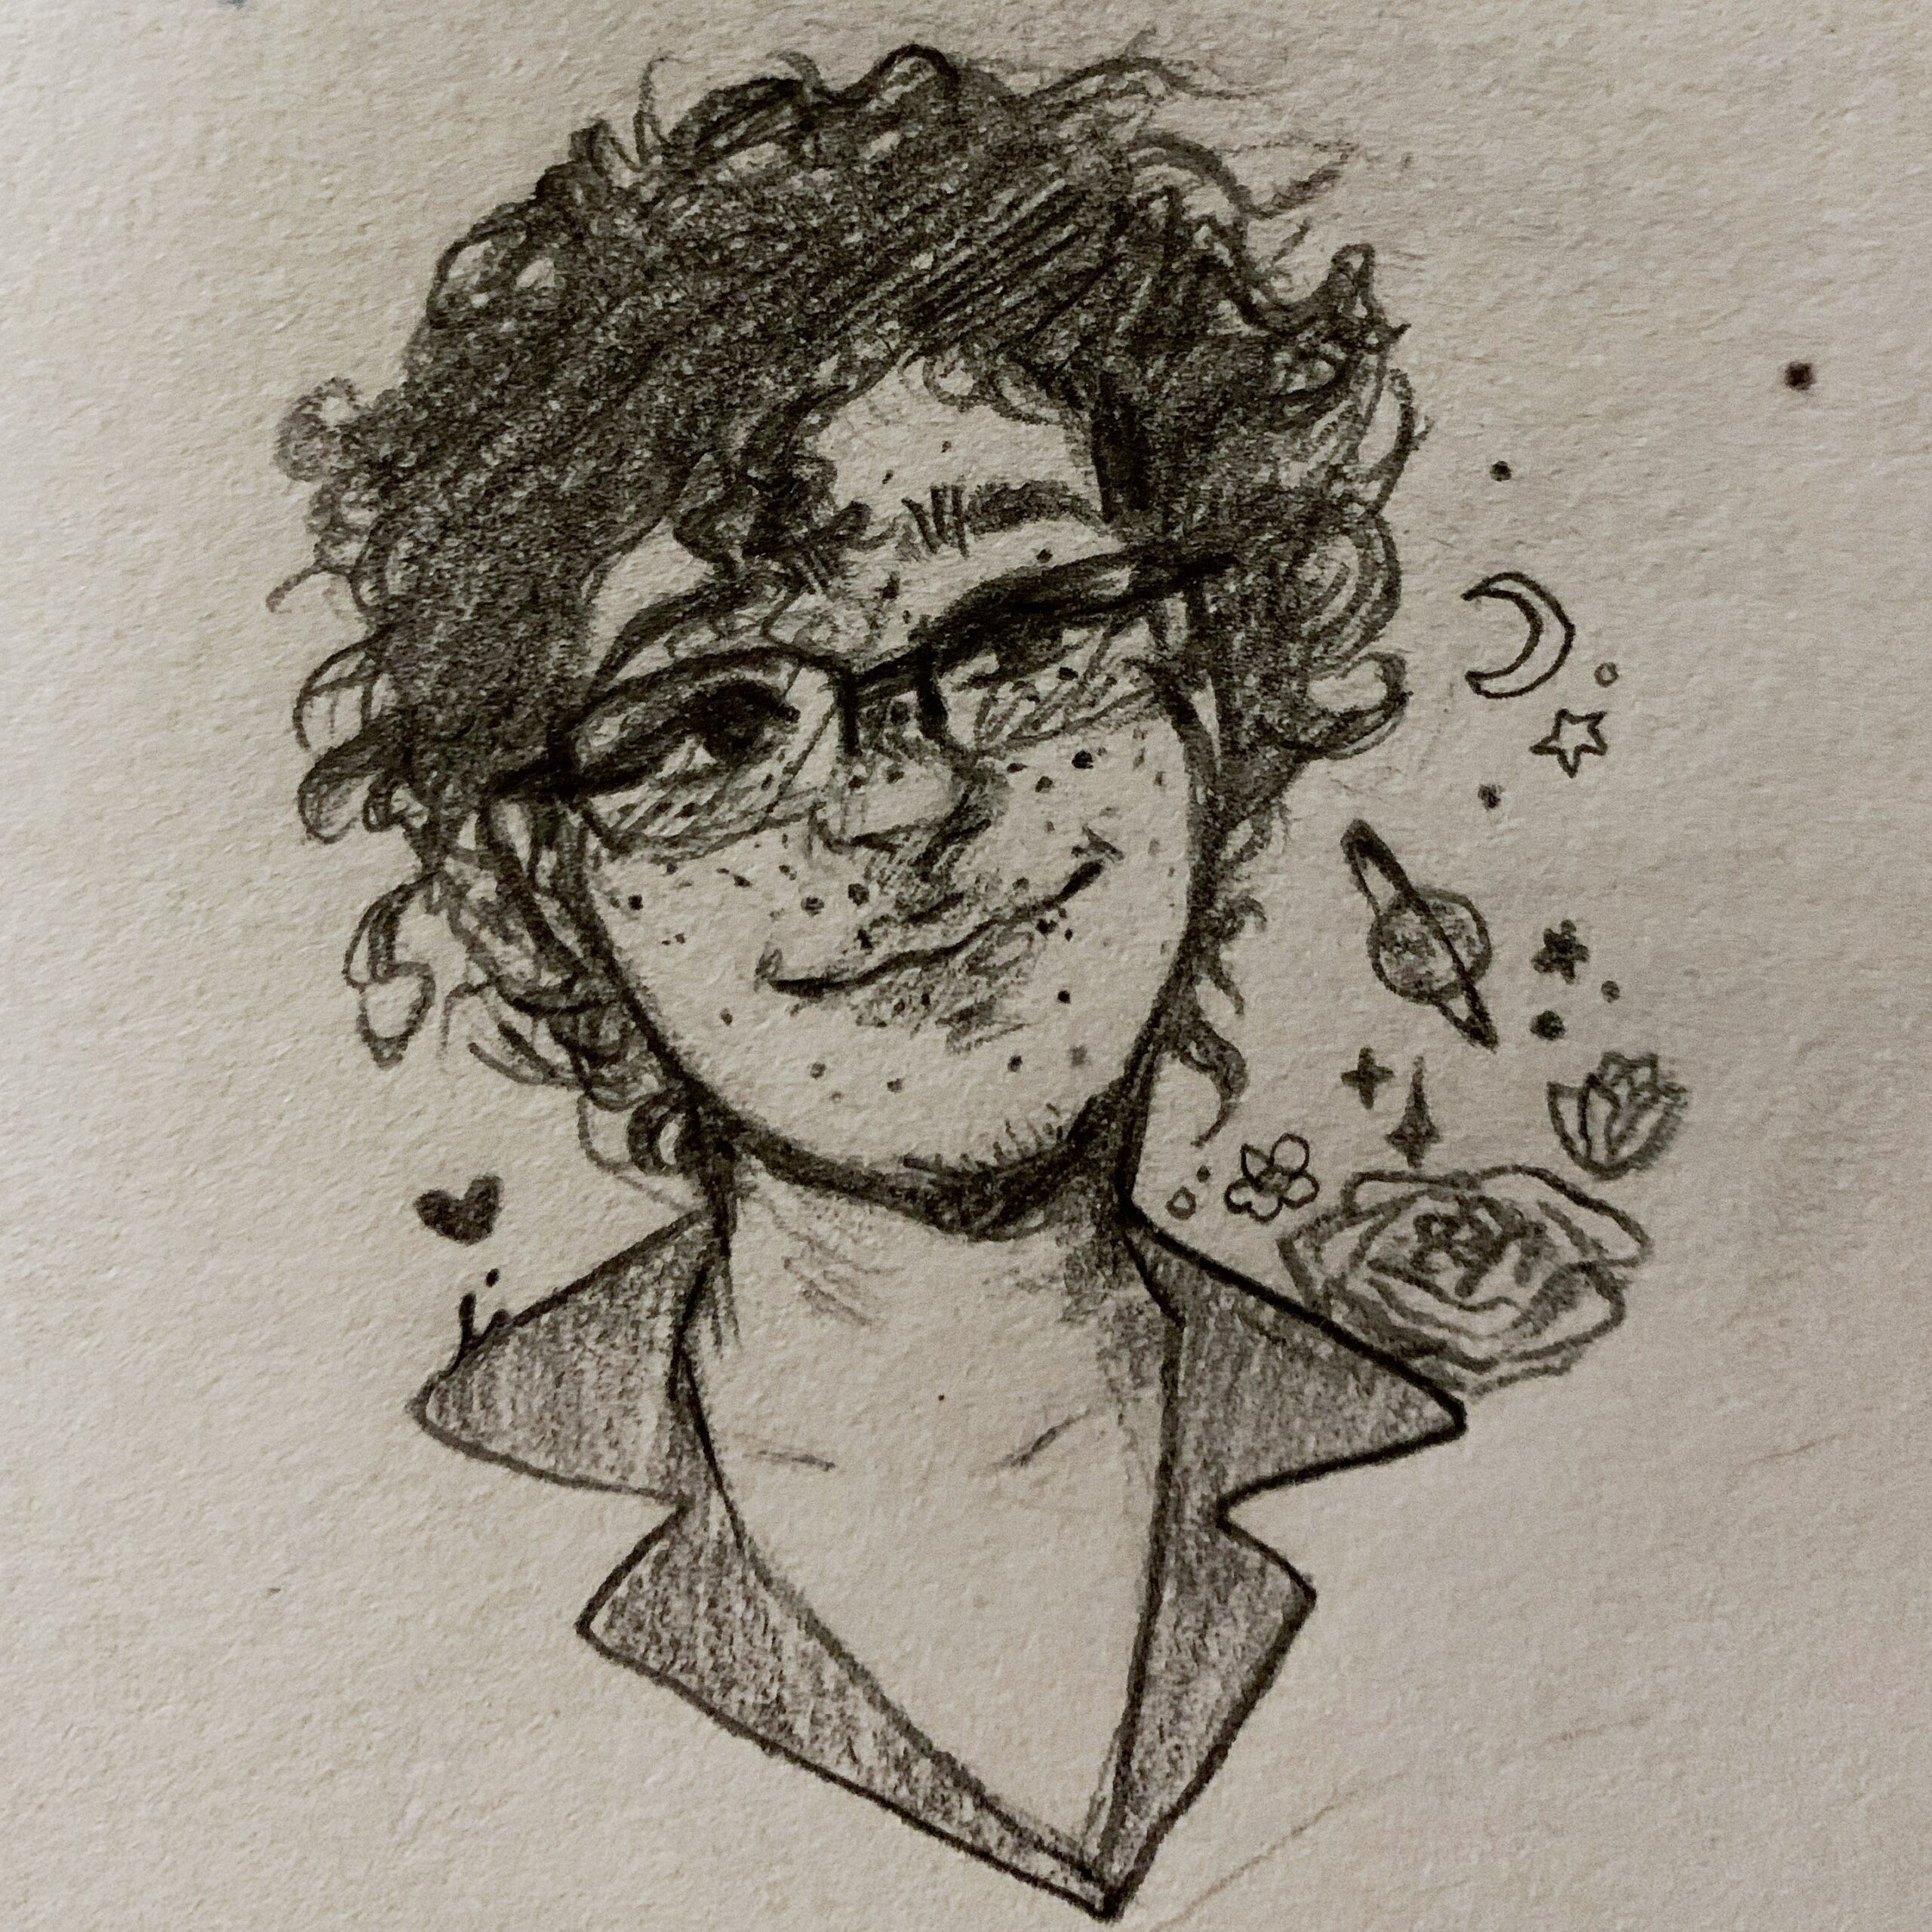 A pencil drawn image of a human with moderate-length curly hair and freckles. There are planets and stars in the background.